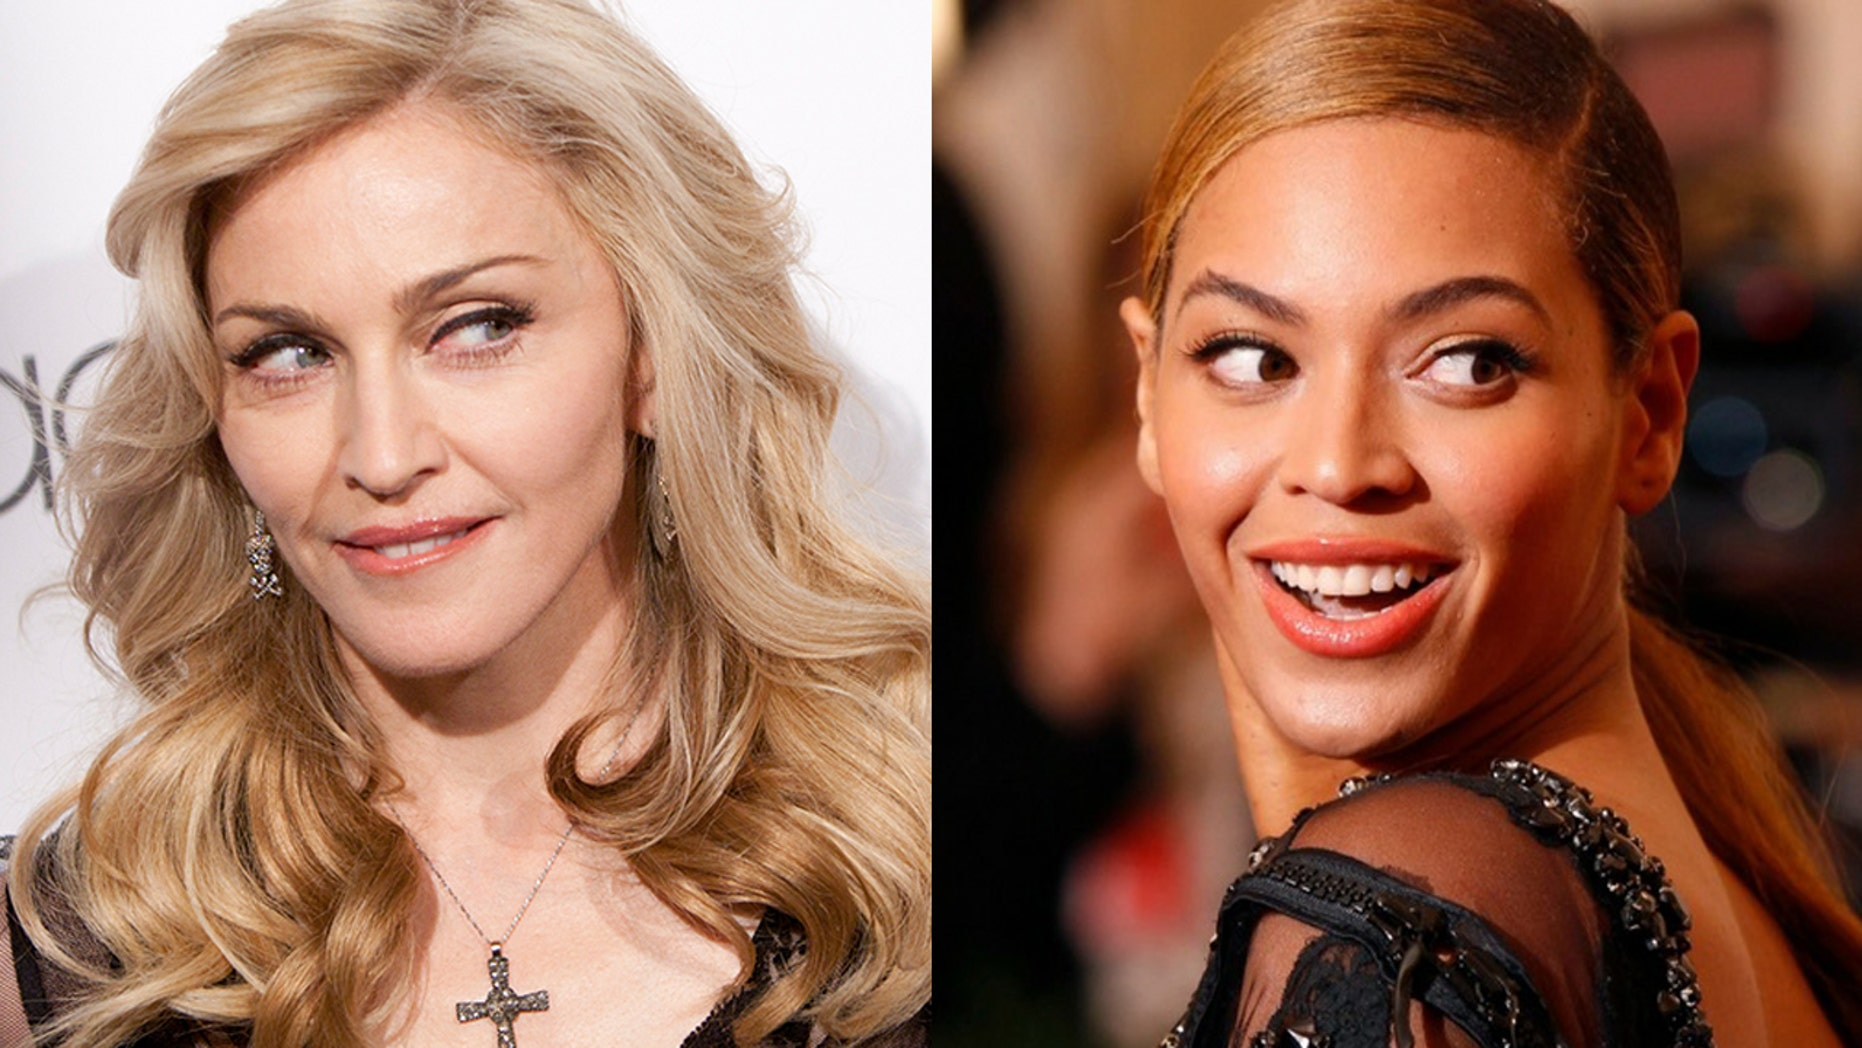 """Beyonce fans took to social media to troll Madonna after she shared a Photoshopped image of the """"Single Ladies"""" singer and her husband, Jay Z looking at images of the """"Like A Prayer"""" singer in the Louvre."""